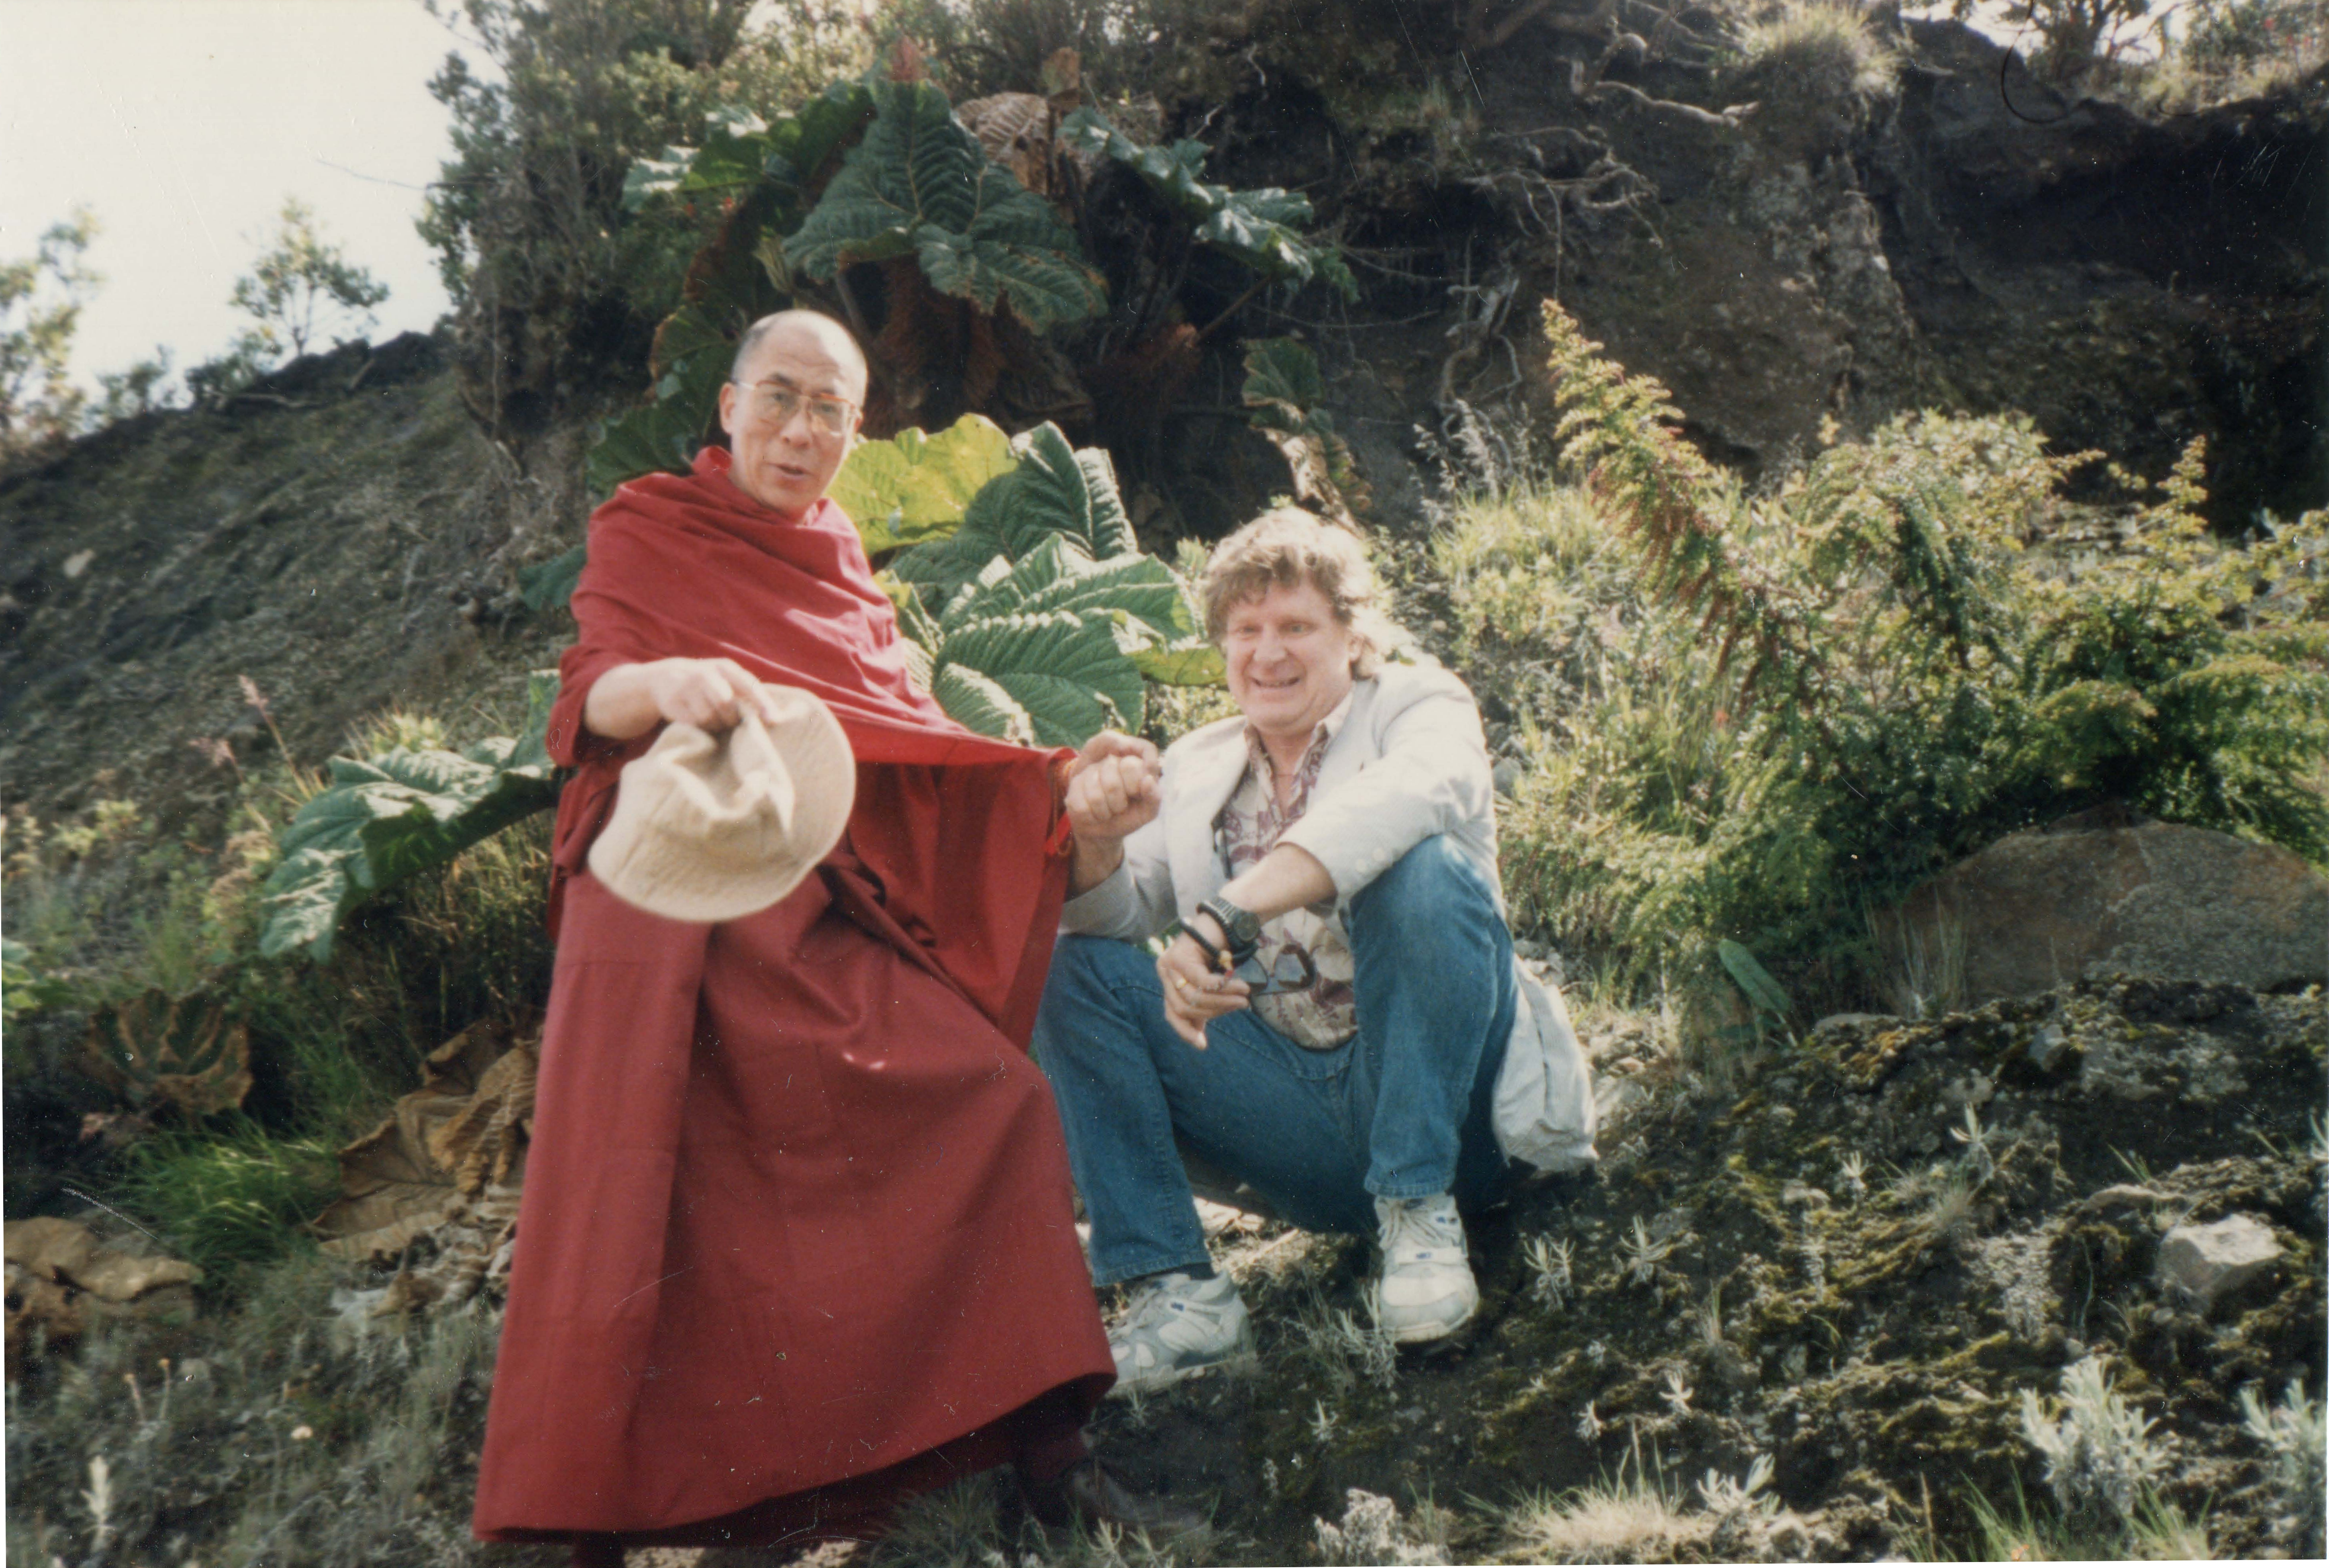 His Holiness the Dalai Lama and Bob on a walk in Costa Rica in 1993